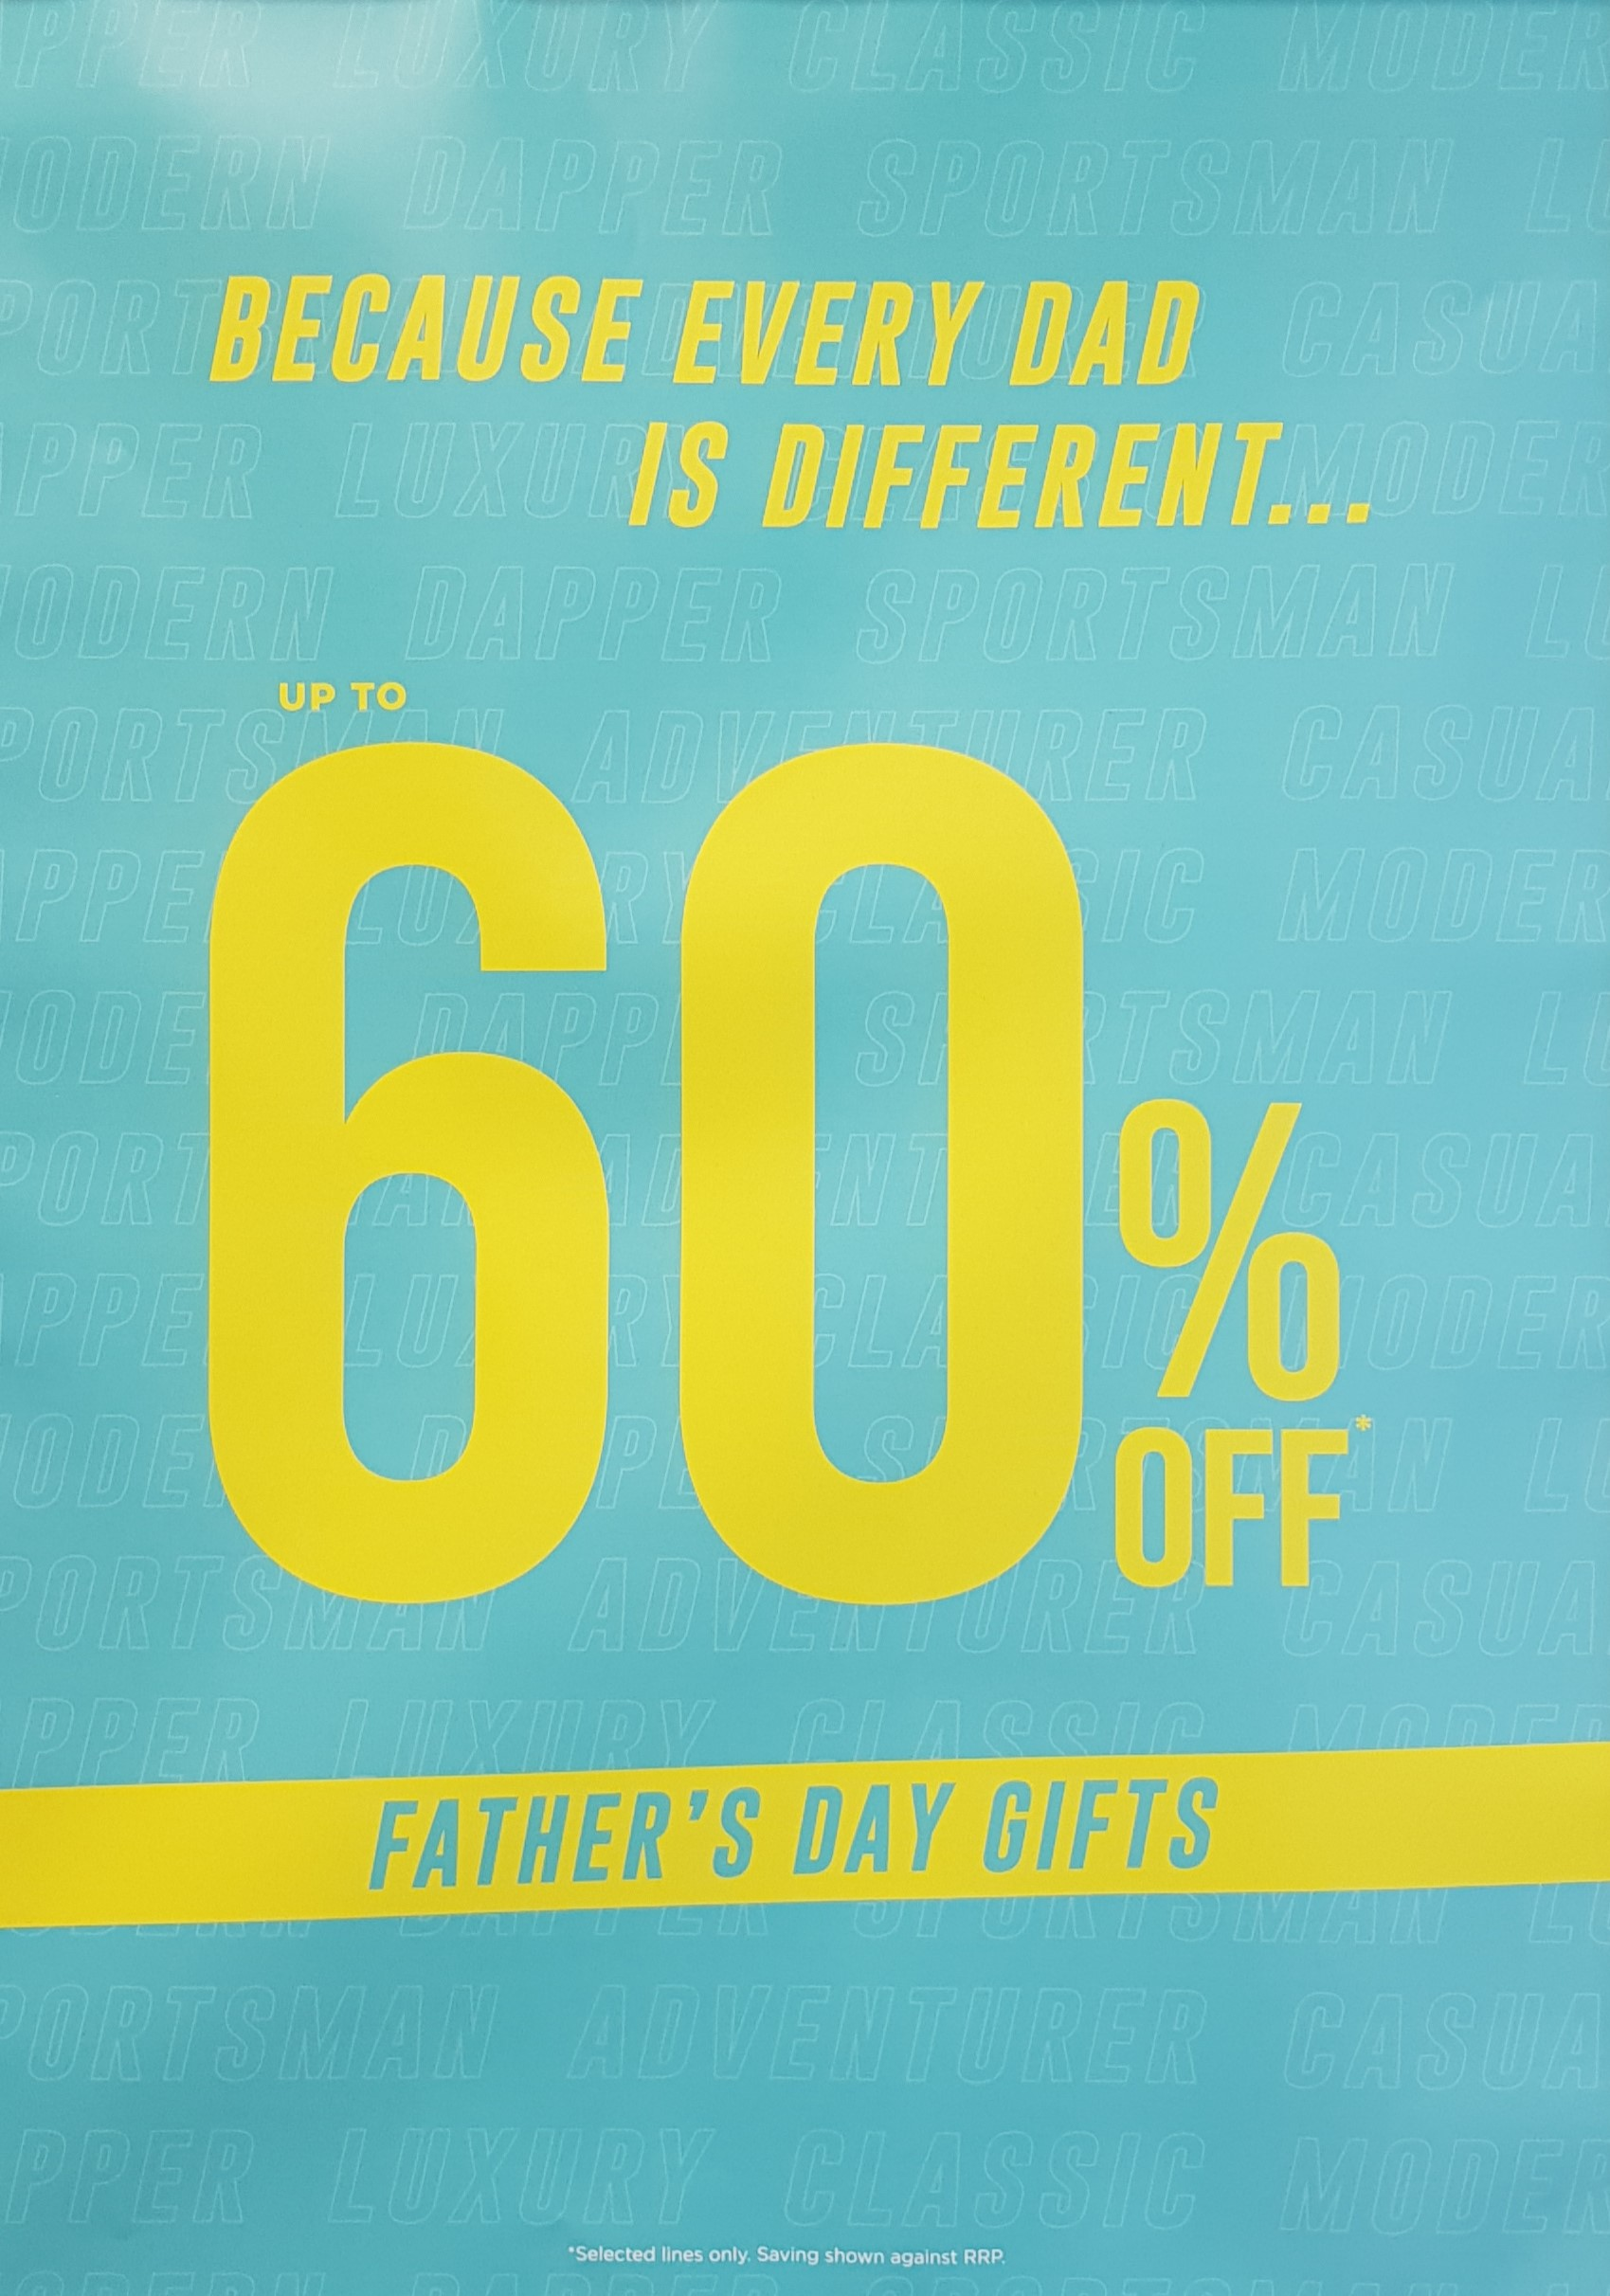 Father's day offer at The Fragrance Shop